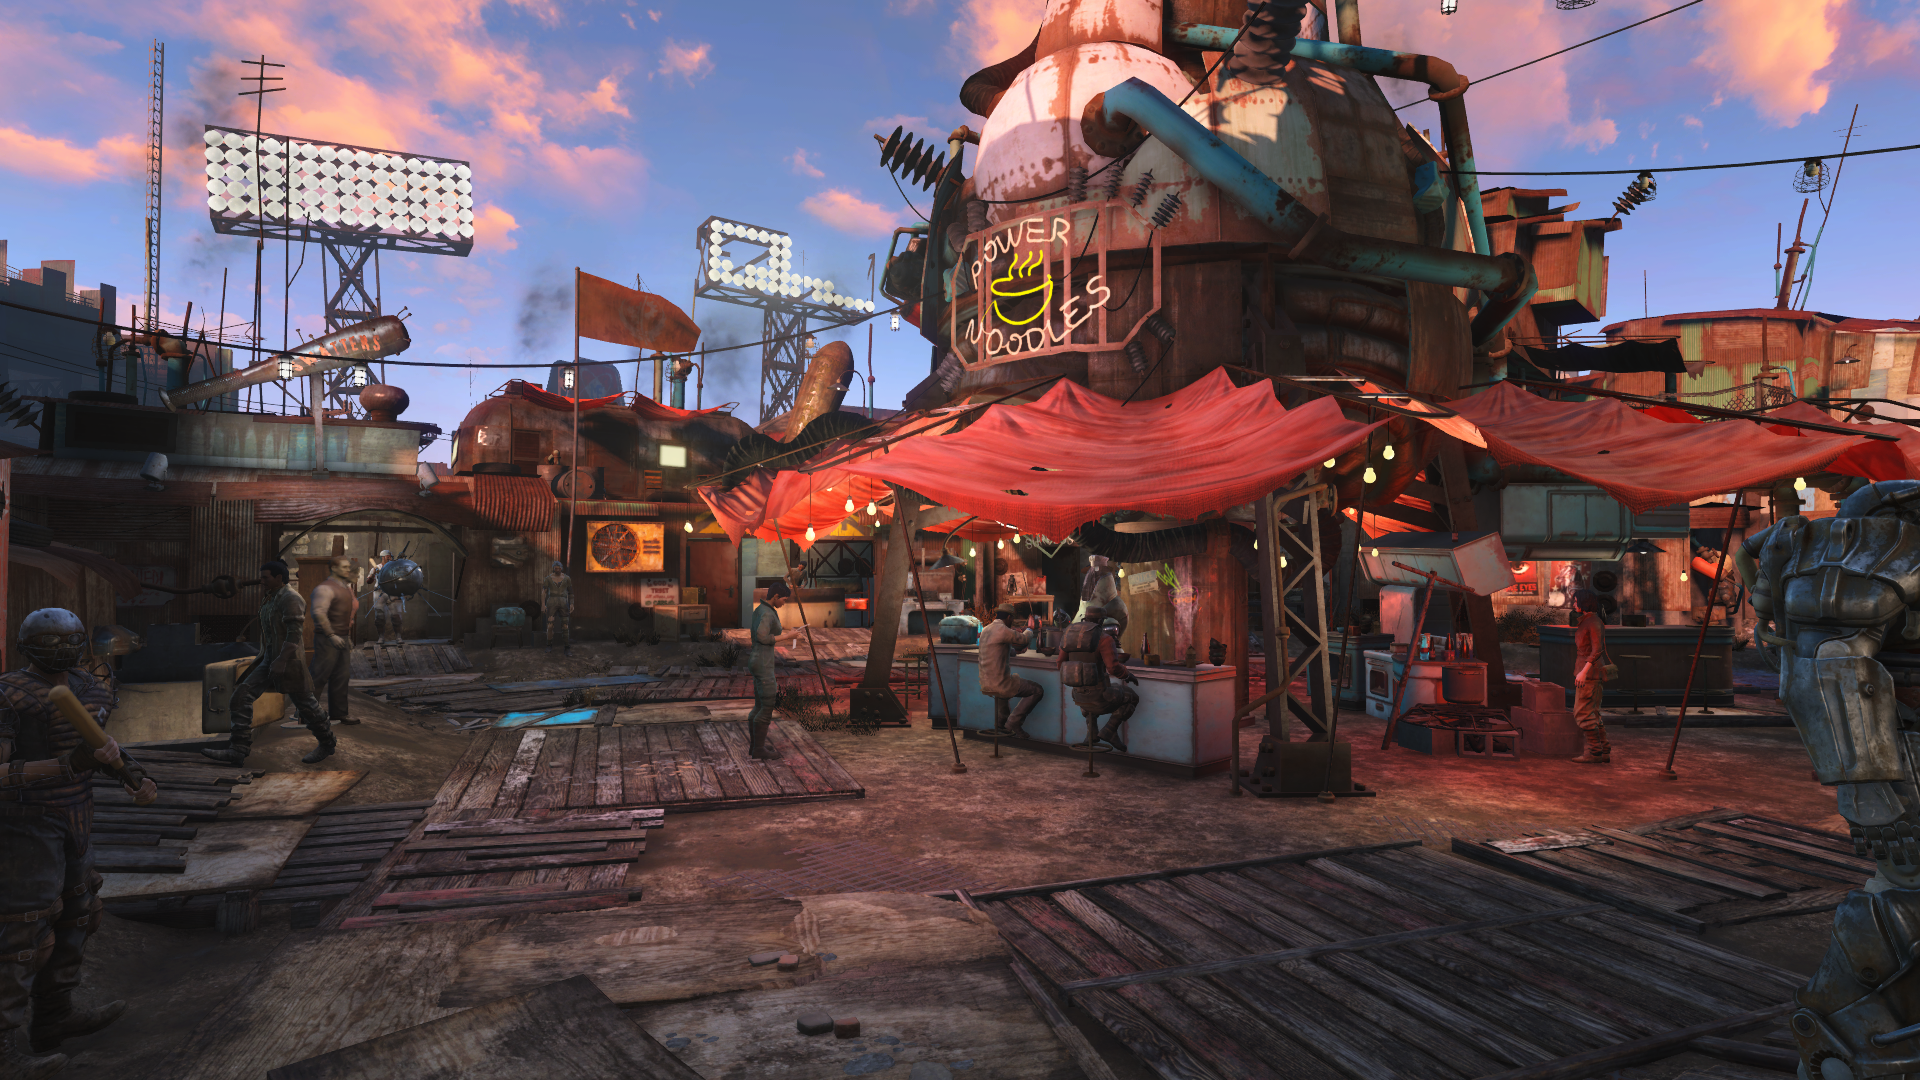 Fallout 4 PC beta patch has arrived - details here